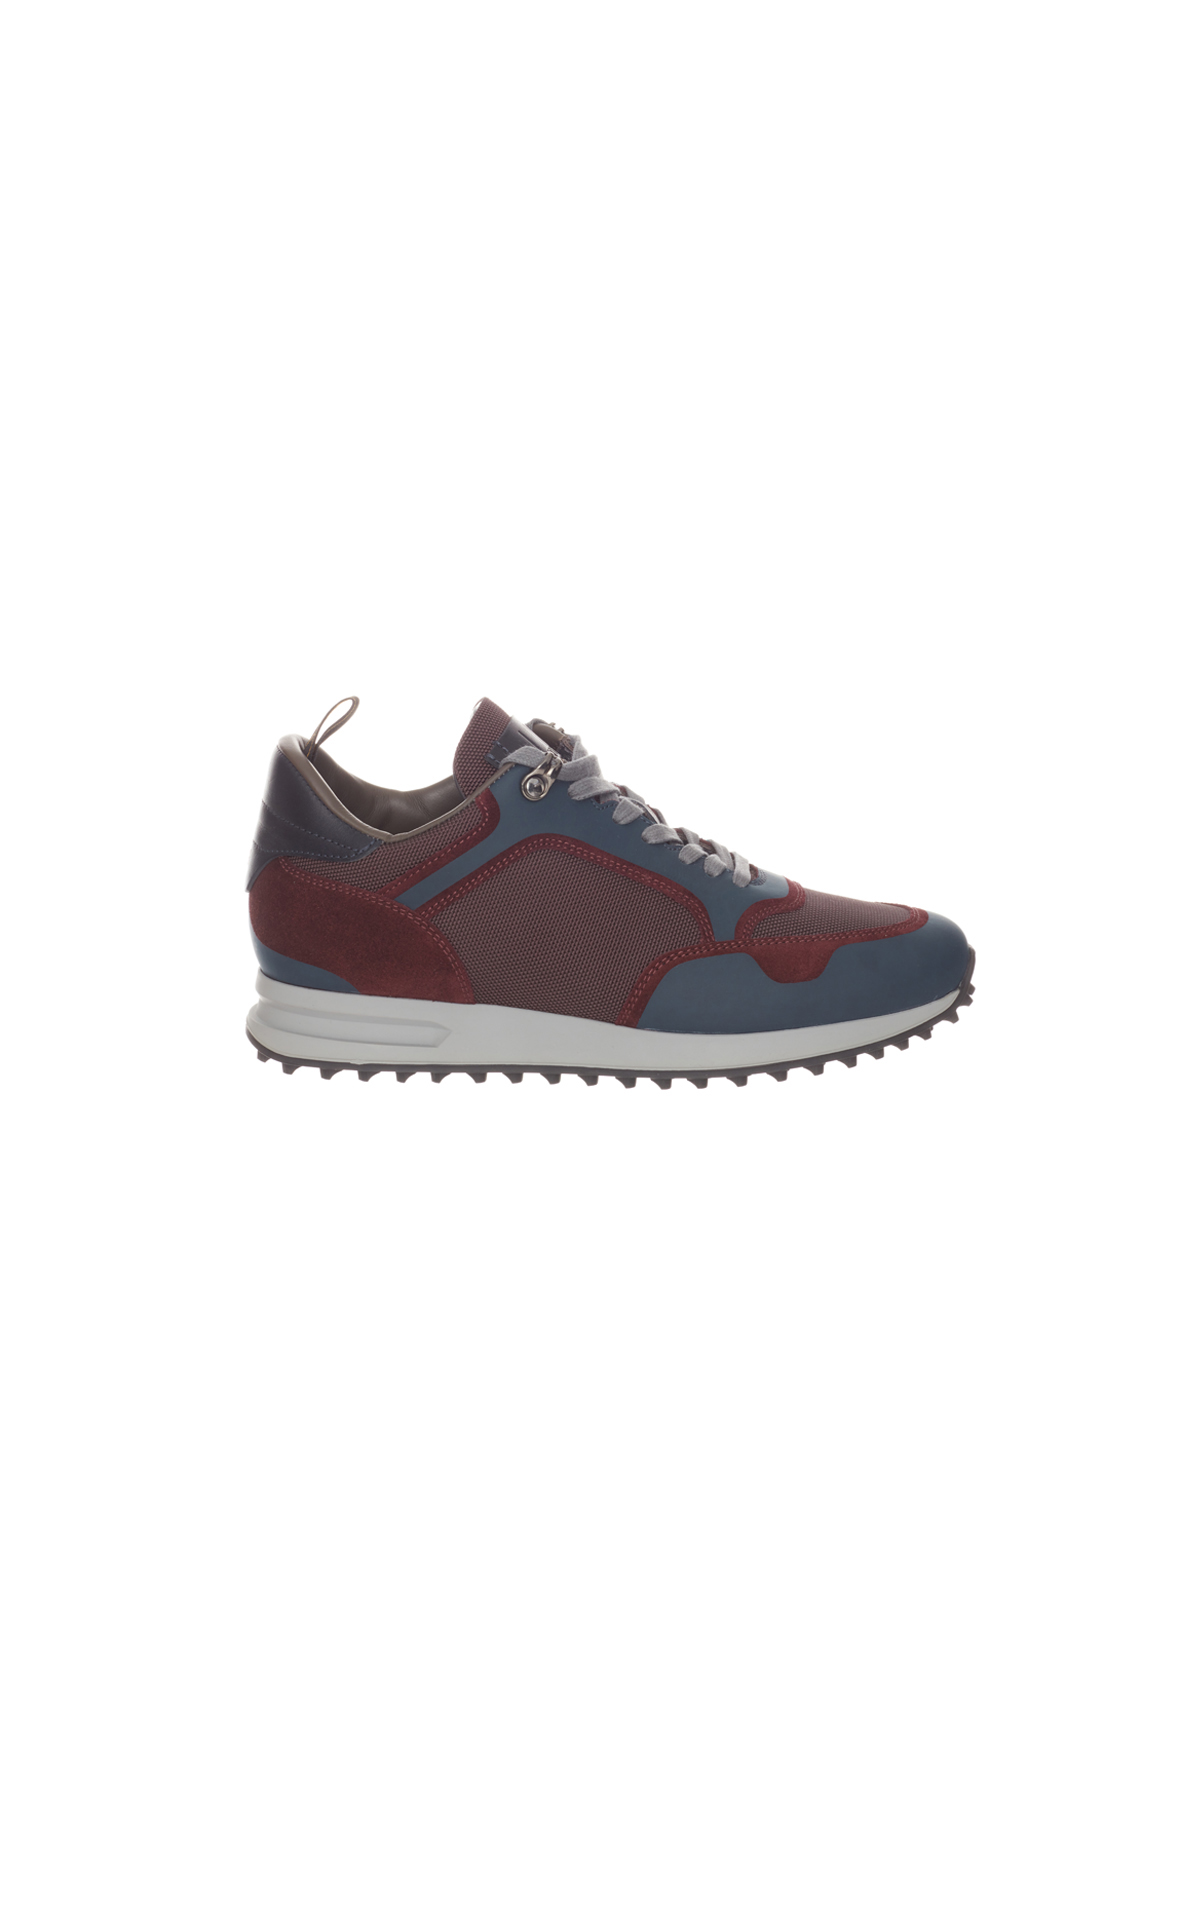 dunhill Radial runner trainer red and blue from Bicester Village